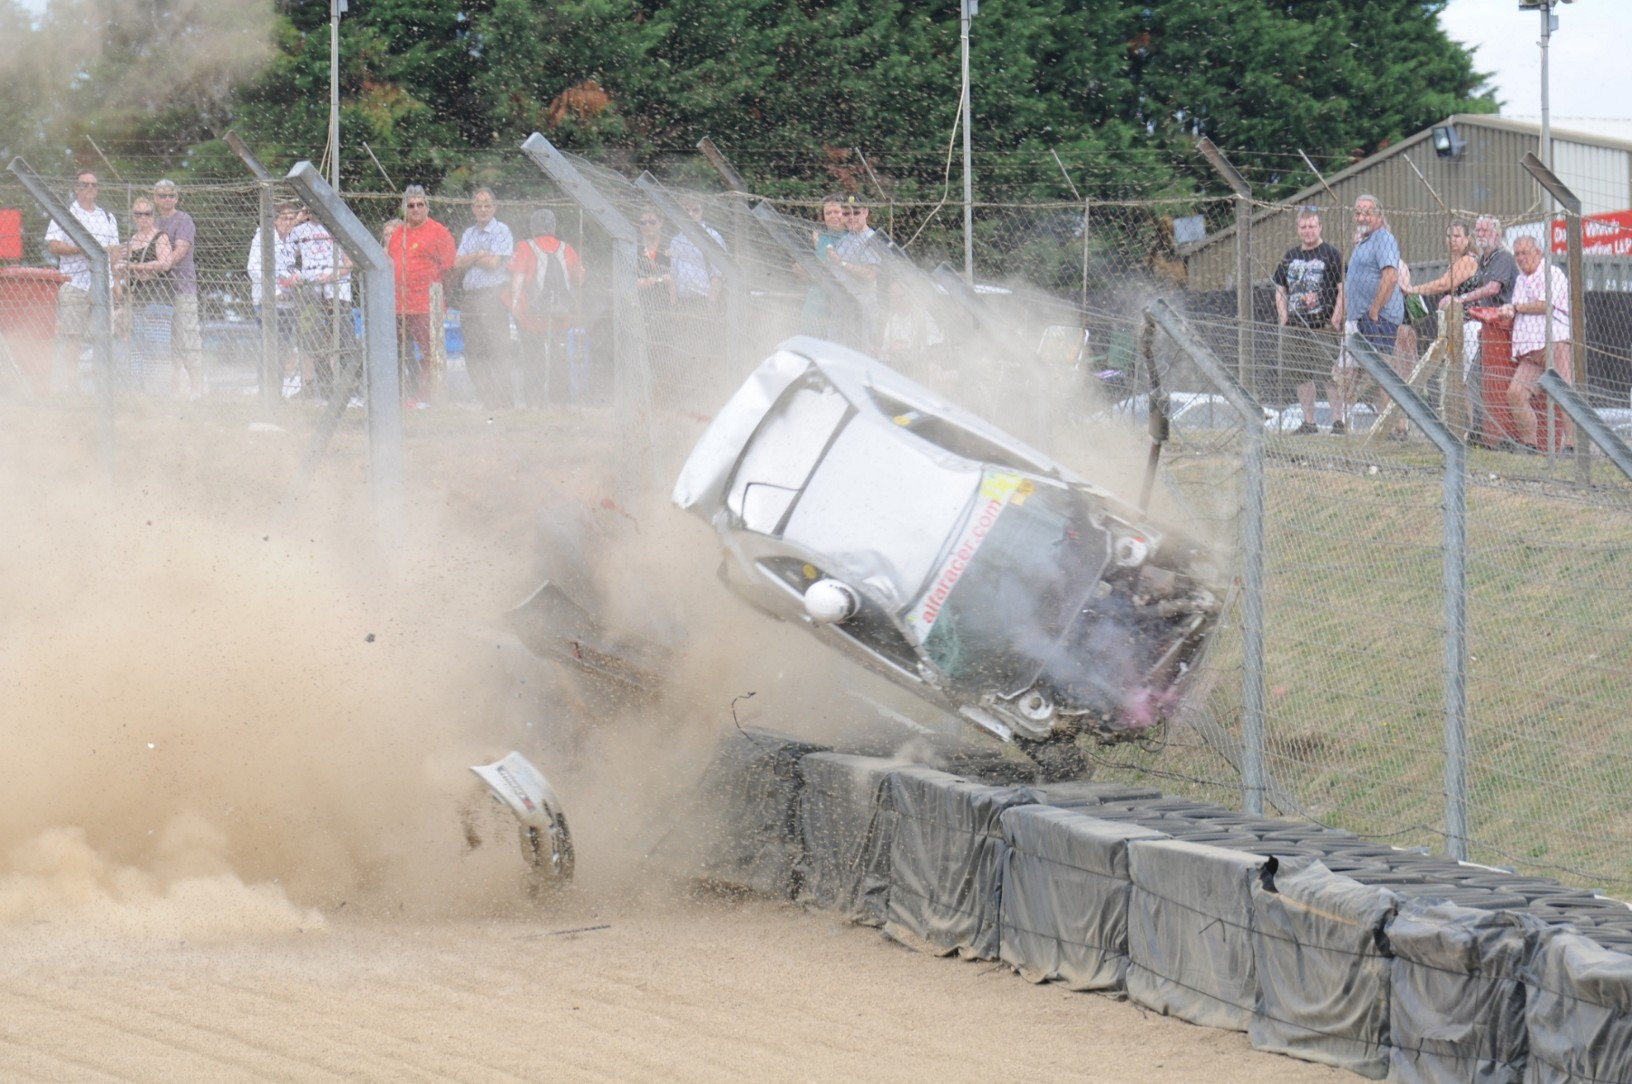 Incredible Moment Racing Driver Survives Crash With Head Out Of Window SWNS CRASH ROLL 08